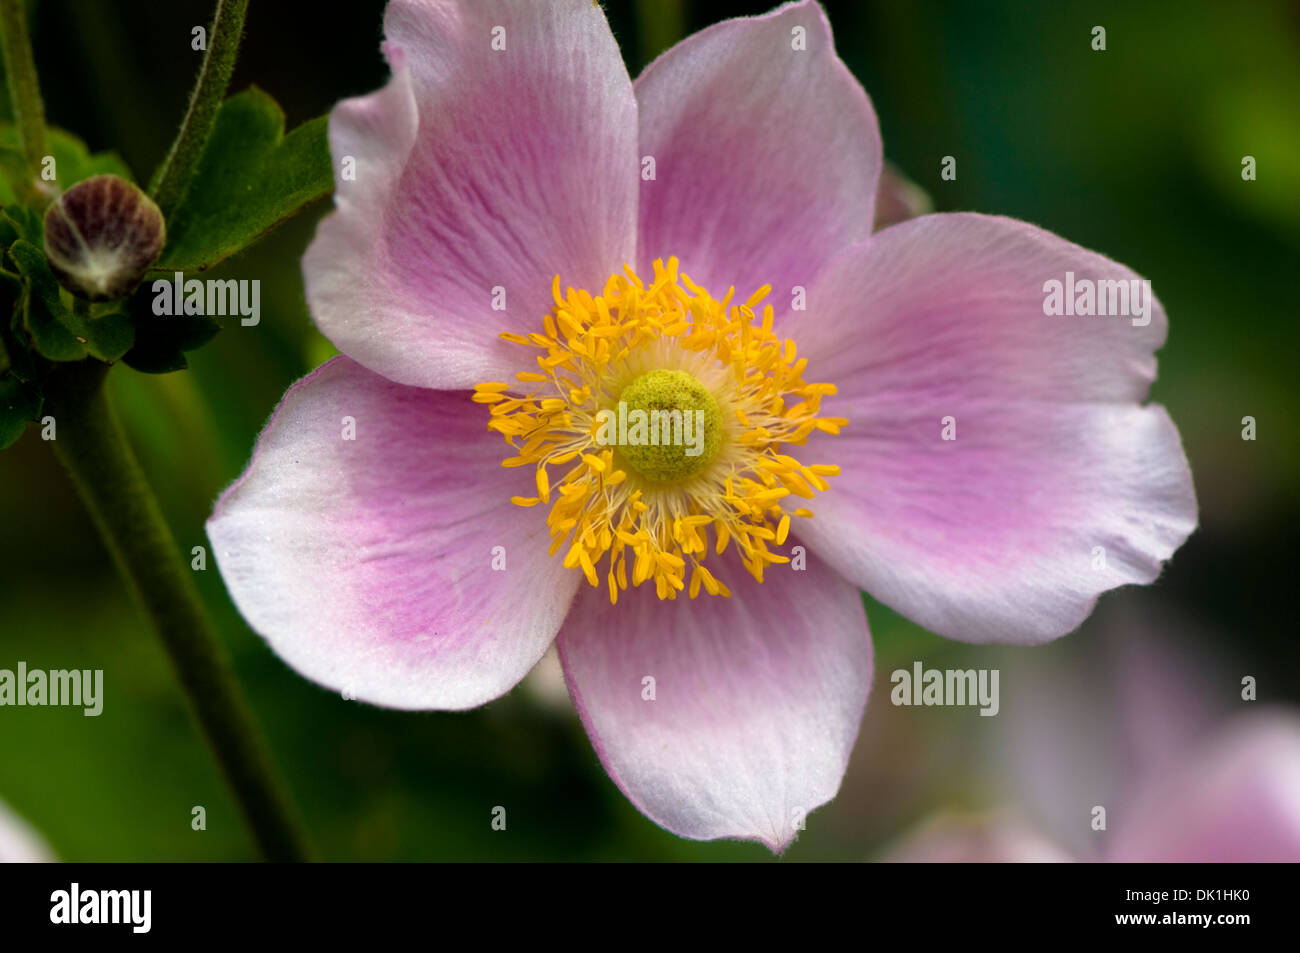 Macro Image Of A Japanese Anemone Flower Close Up With Its Pink